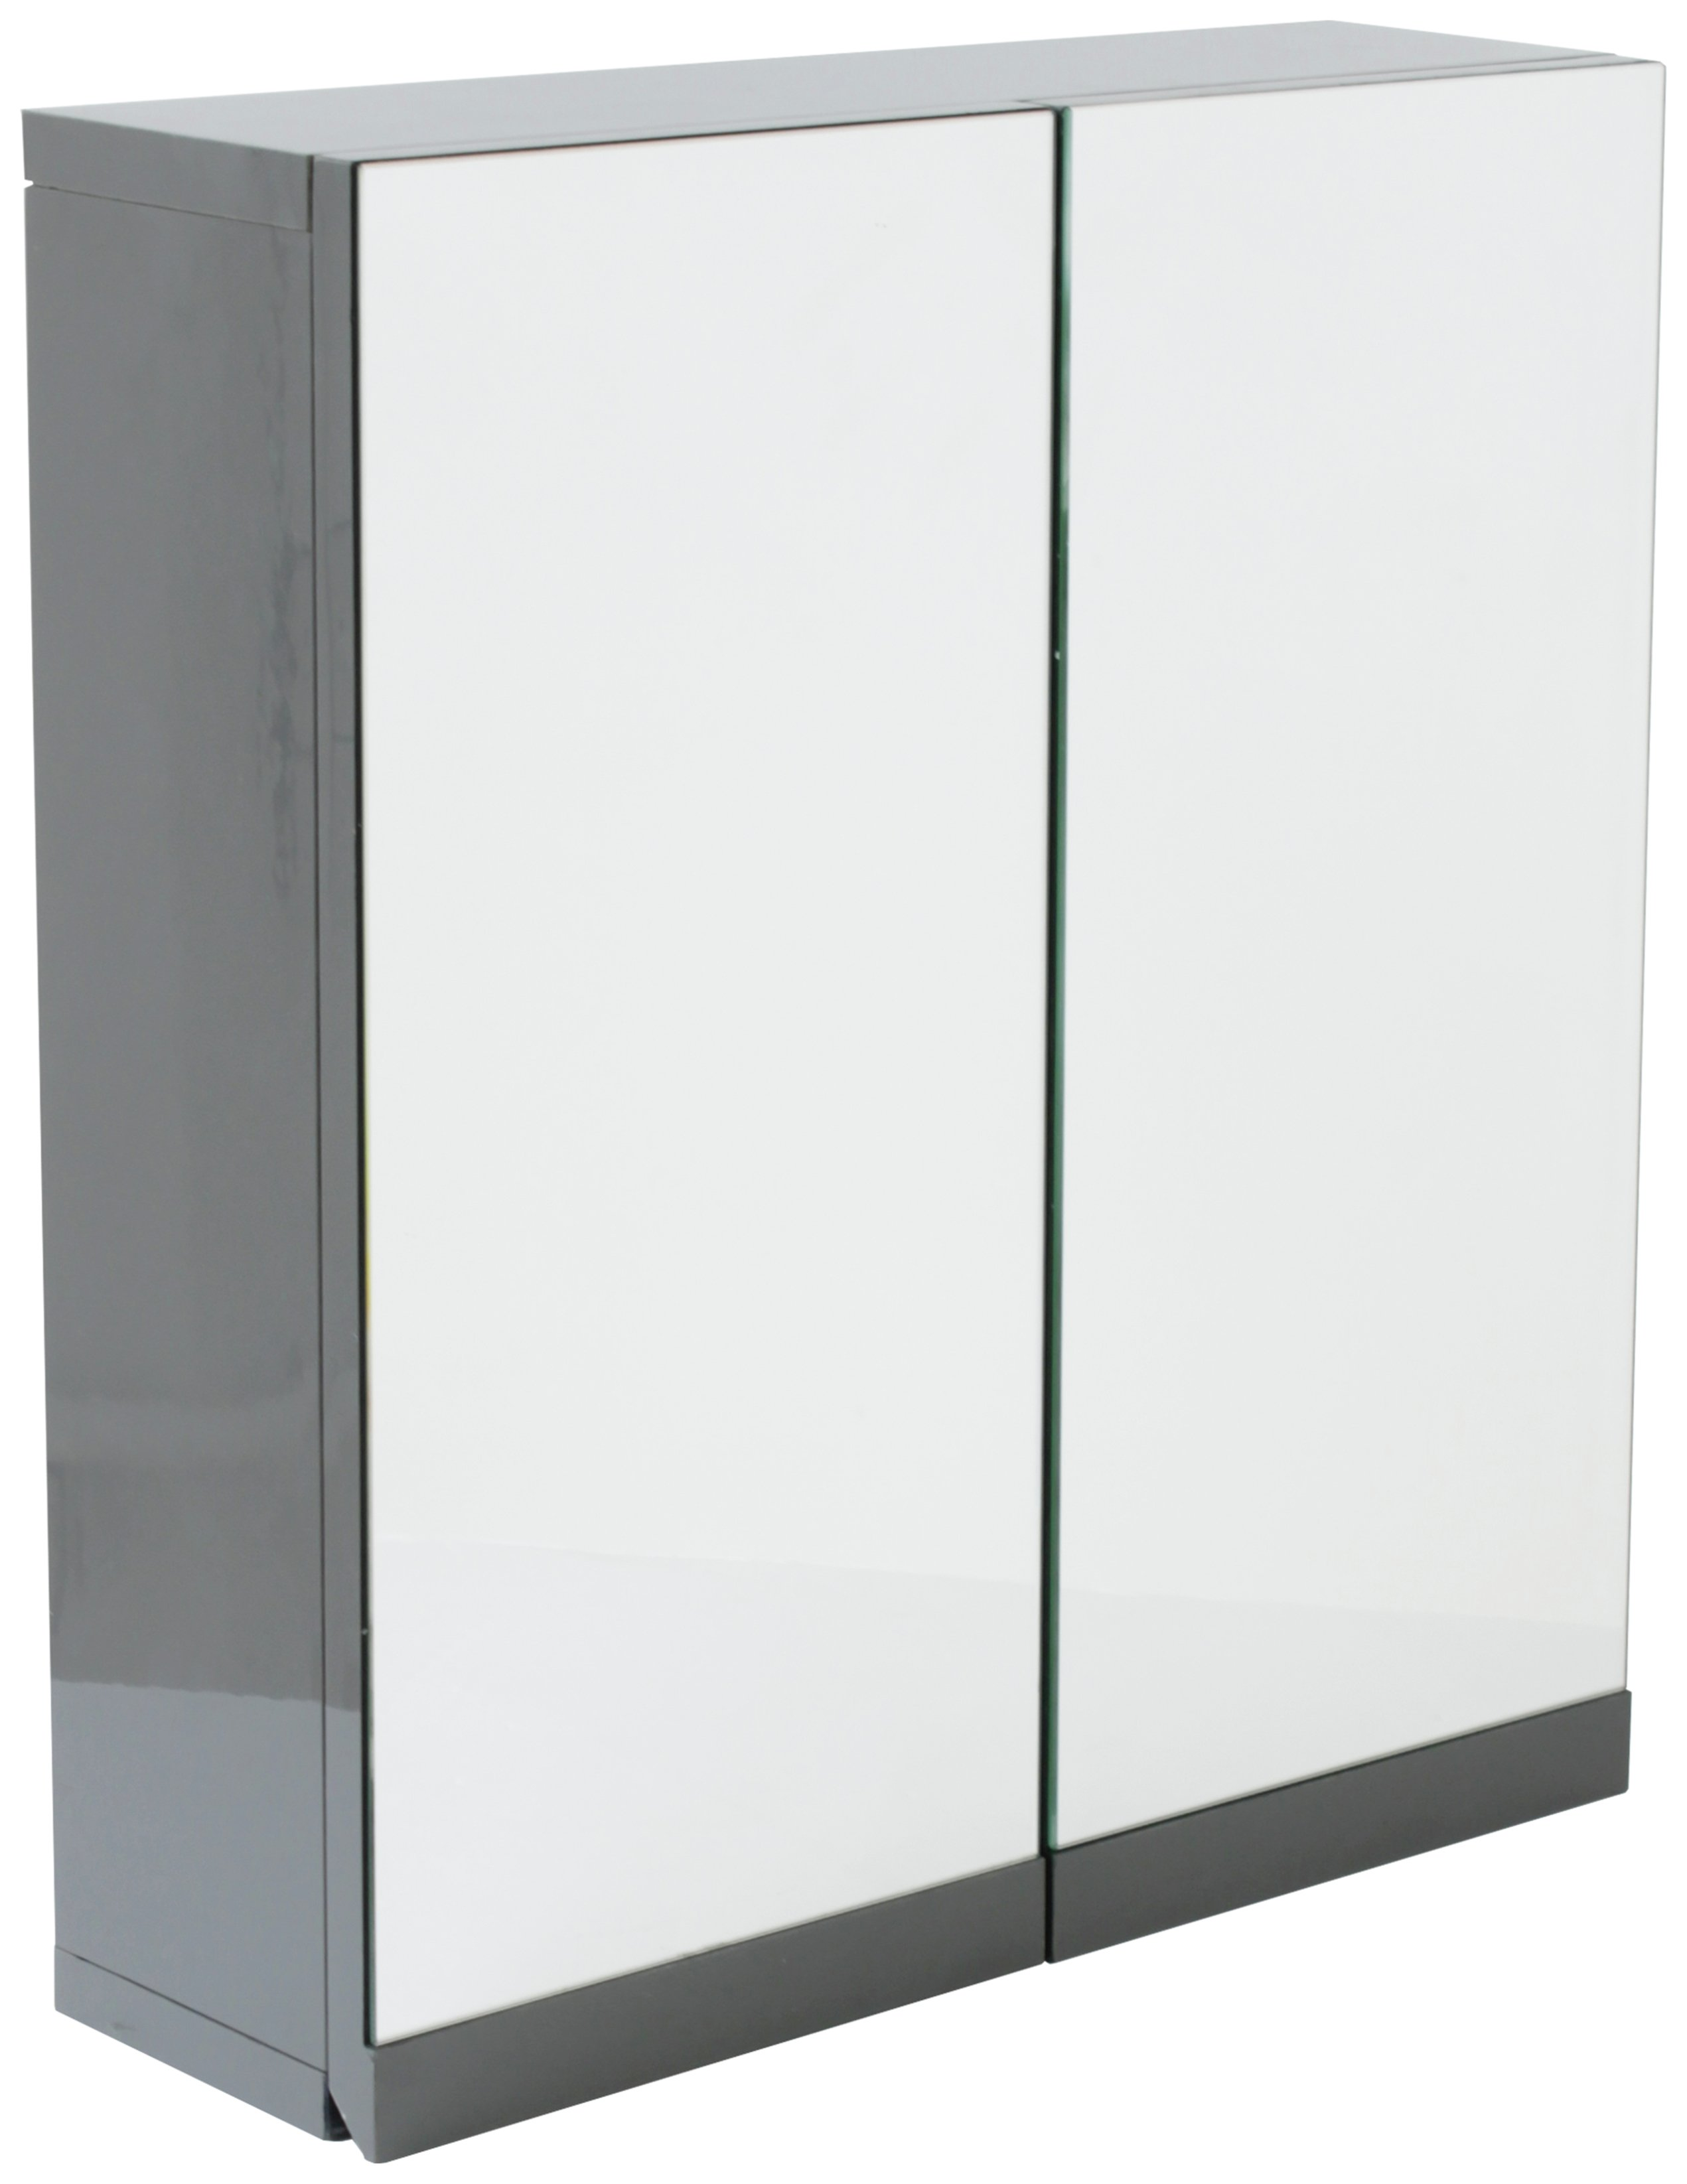 Hygena Gloss Double Door Bathroom Wall Cabinet - Grey at Argos